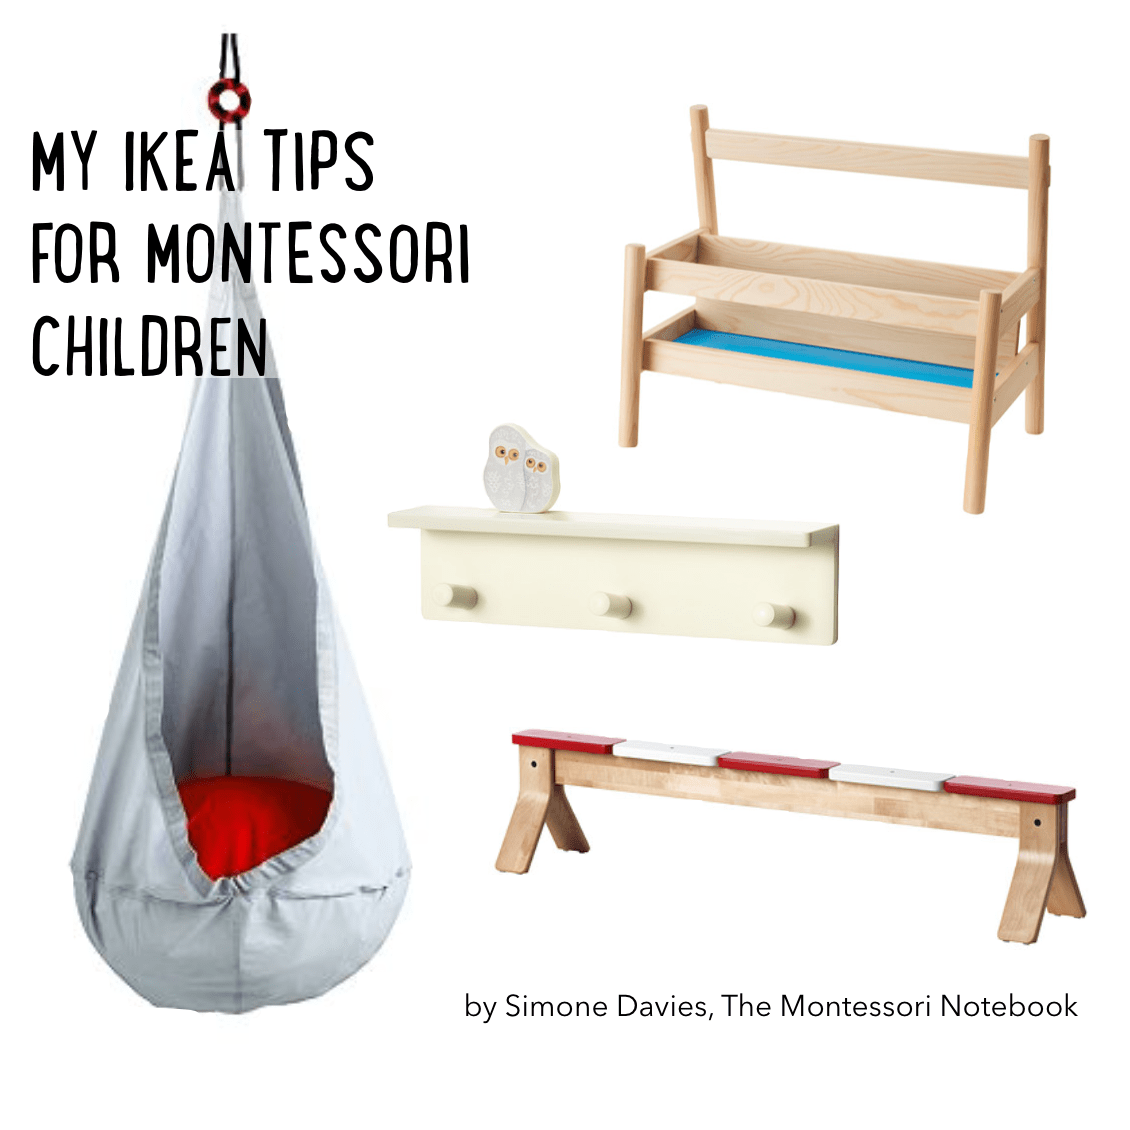 Trofast Montessori My Top Ikea Picks For Montessori Children The Montessori Notebook